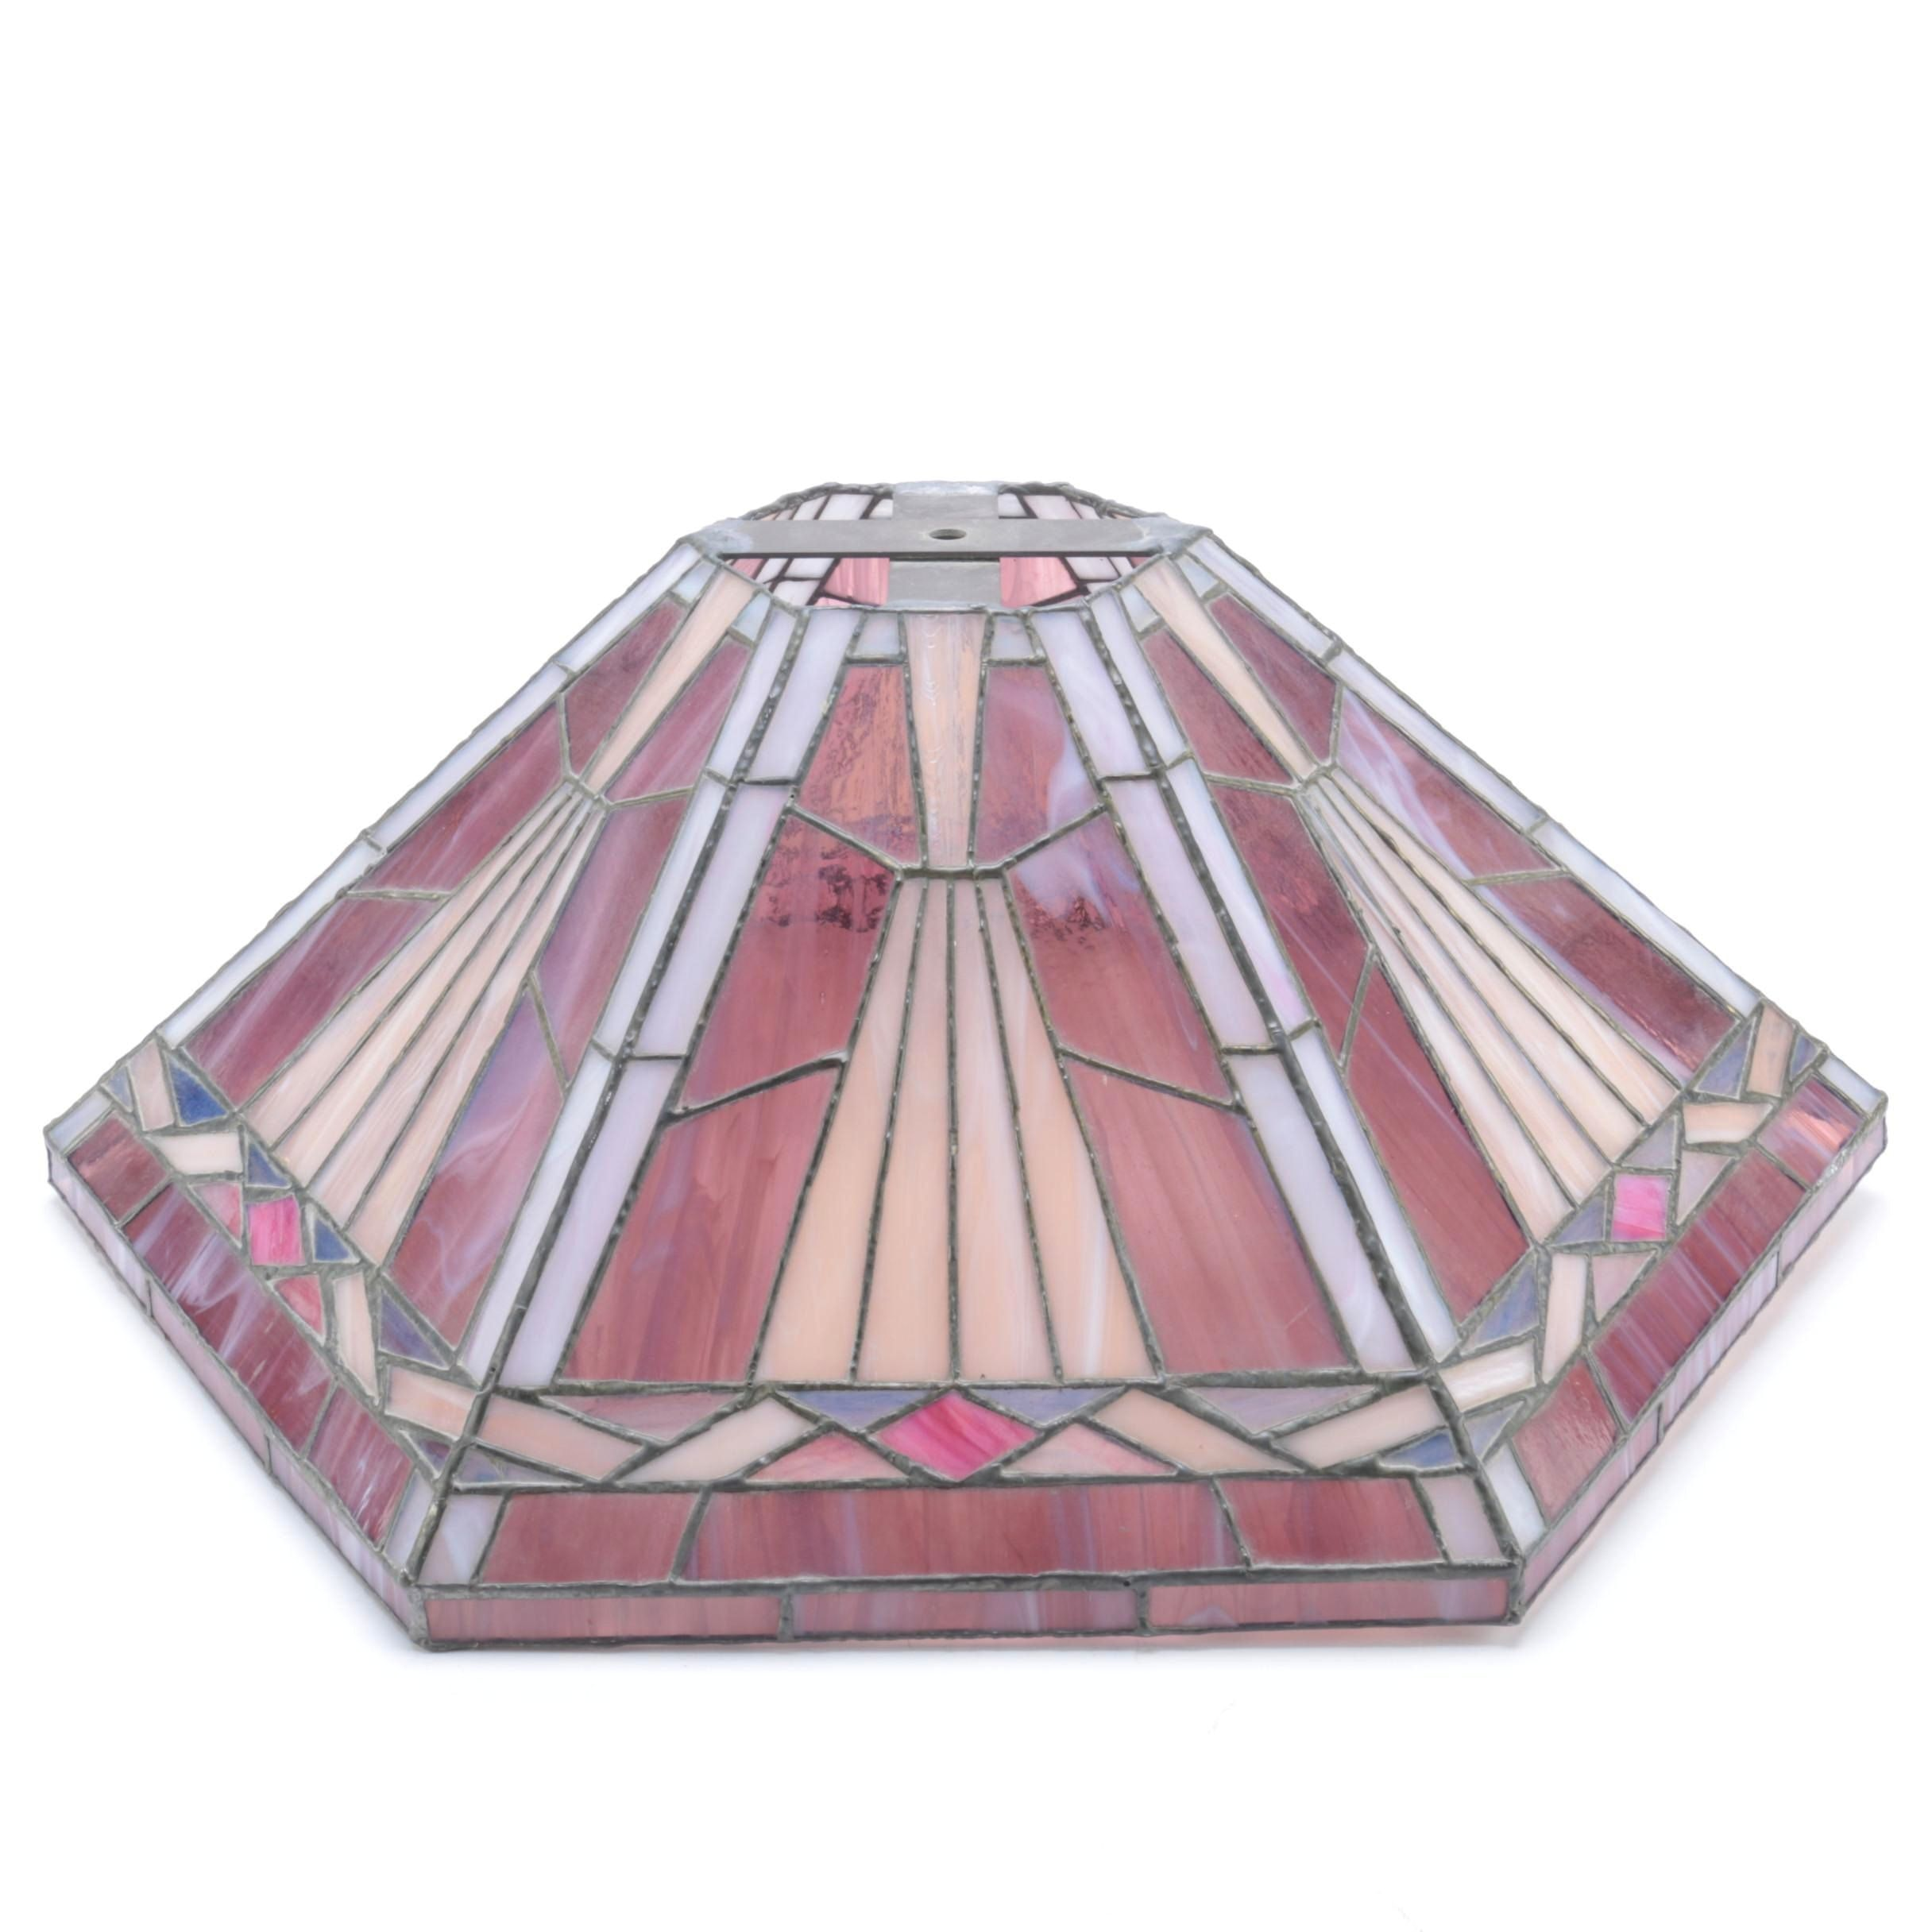 Stained Glass Lamp Shade ...